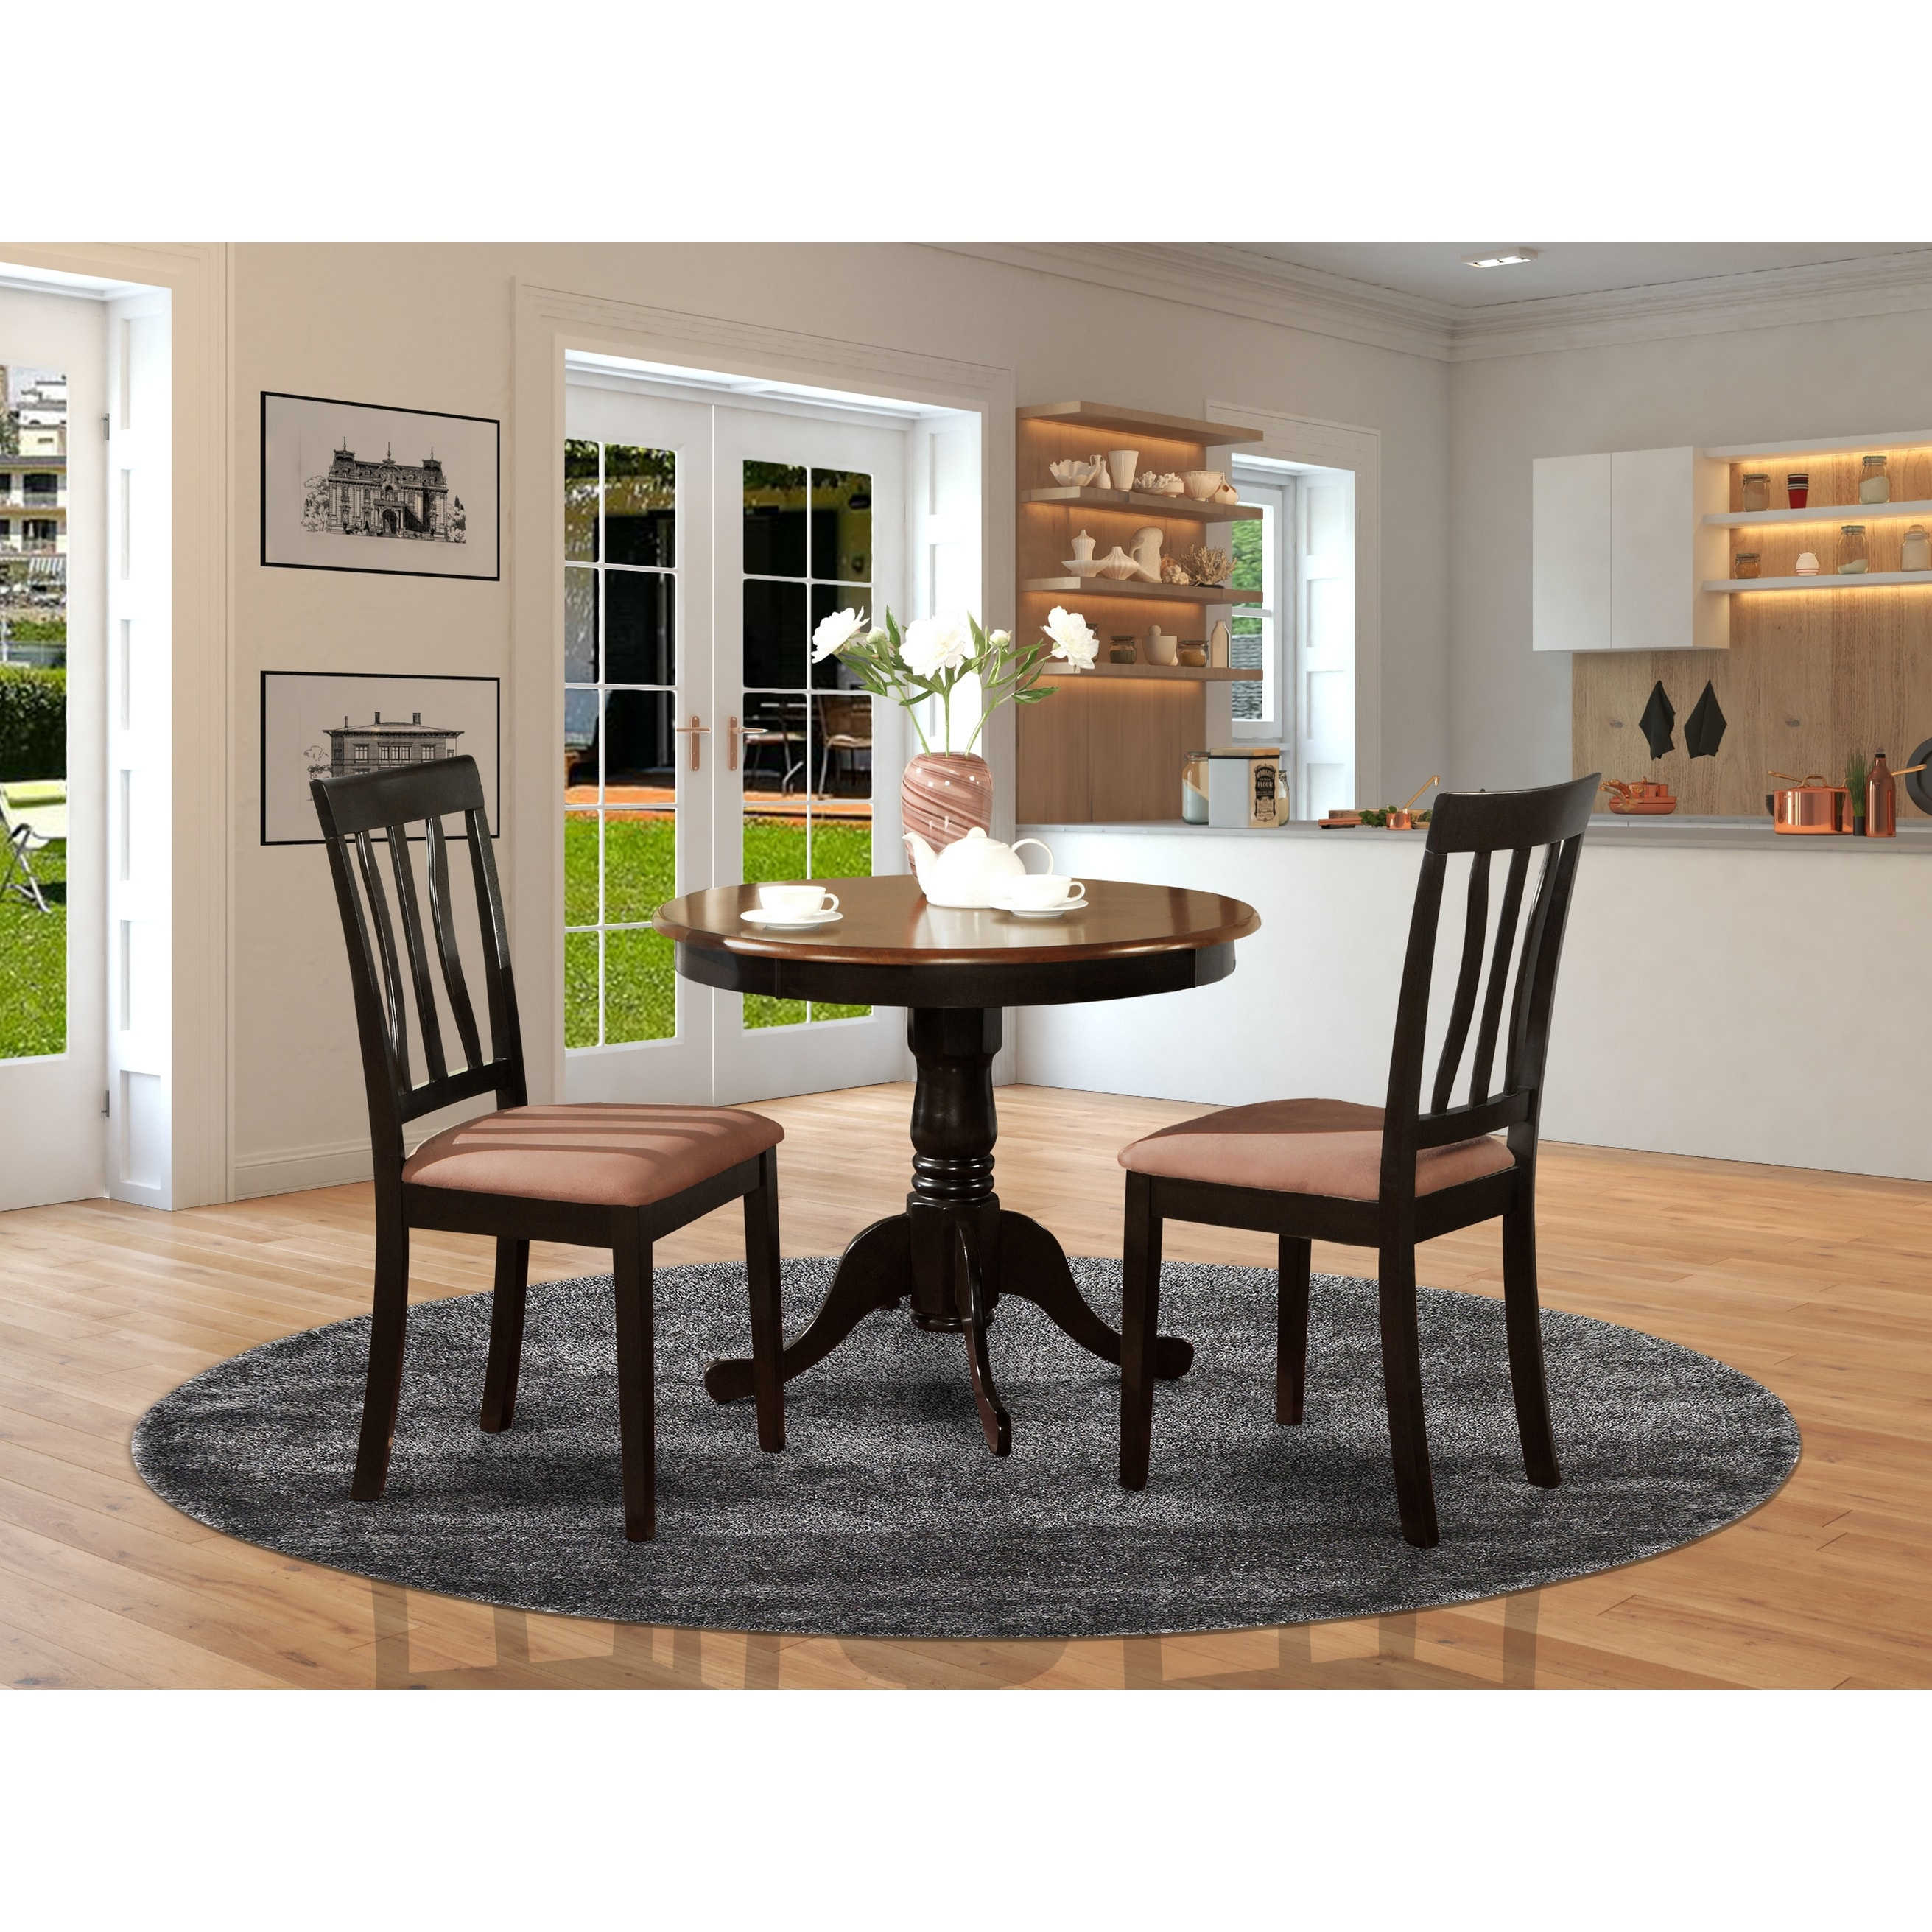 Round 3 Pc Dining Set 1 Table And 2 Chairs Chair Option Overstock 10201084